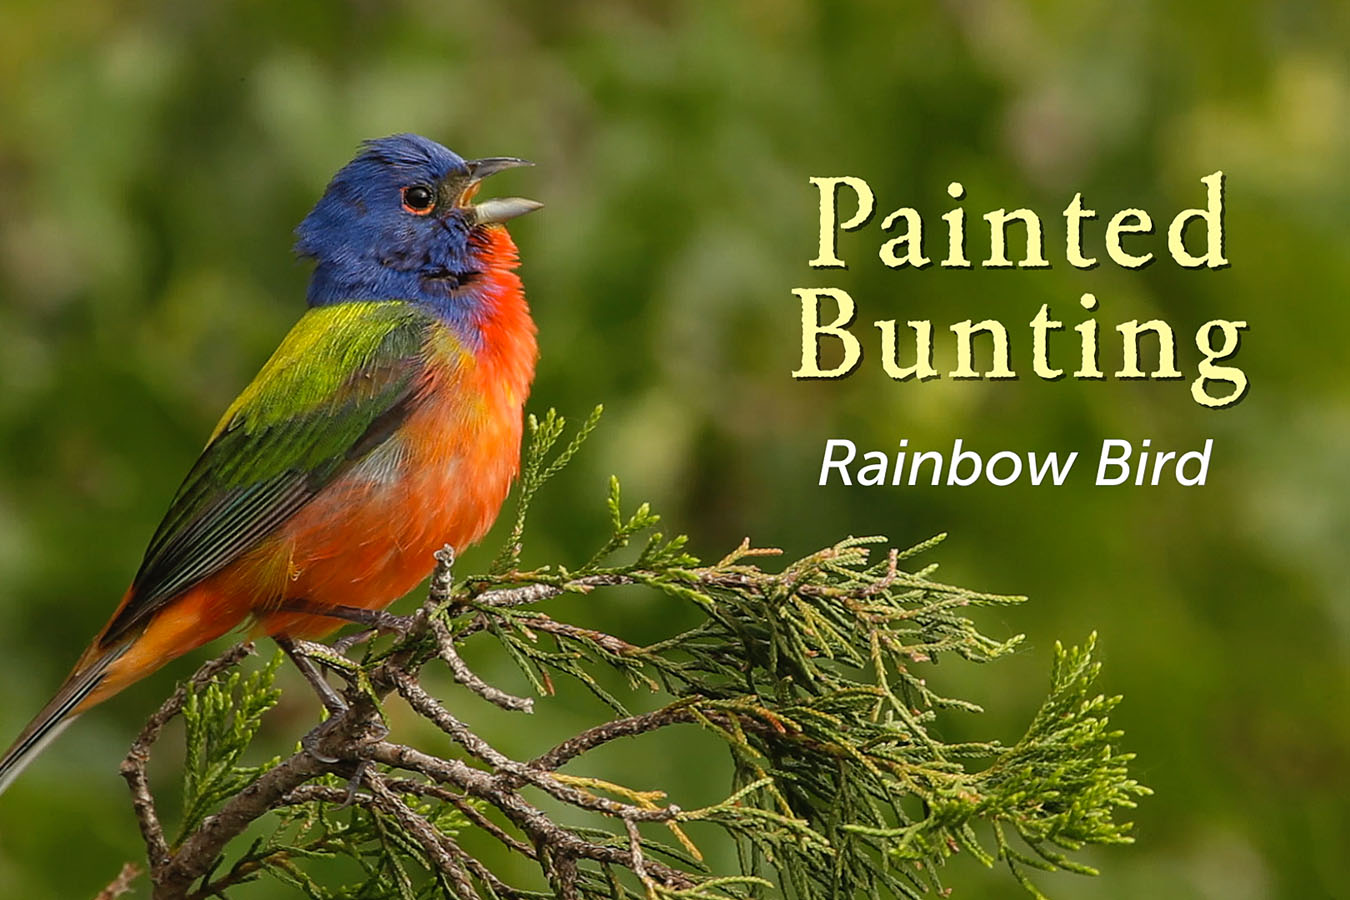 Painted Bunting - featured image © Lang Elliott